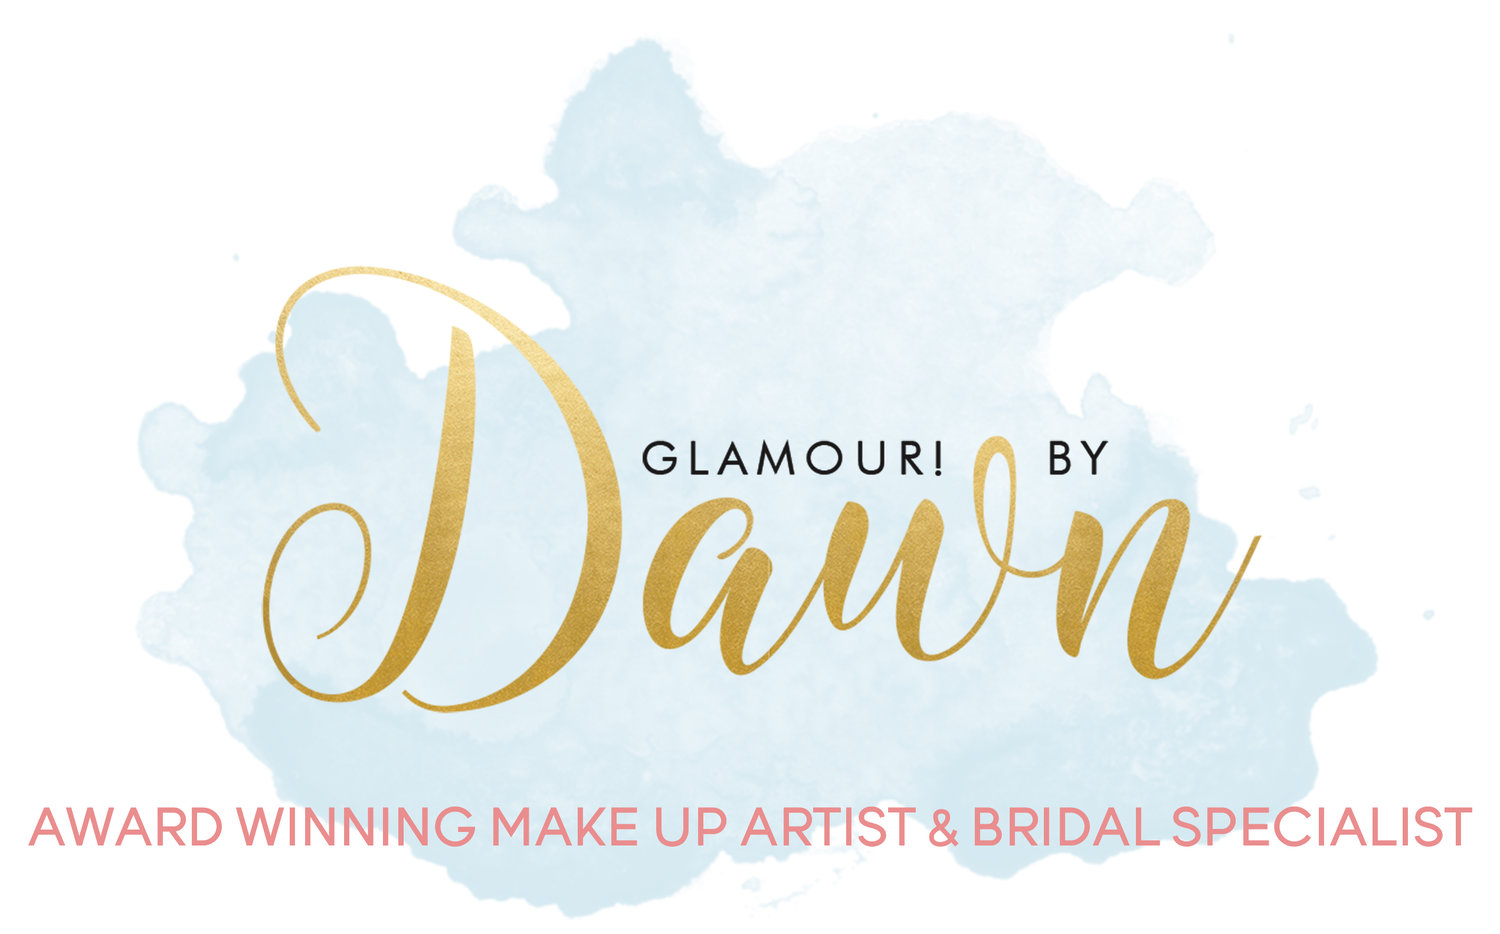 Glamour! by Dawn